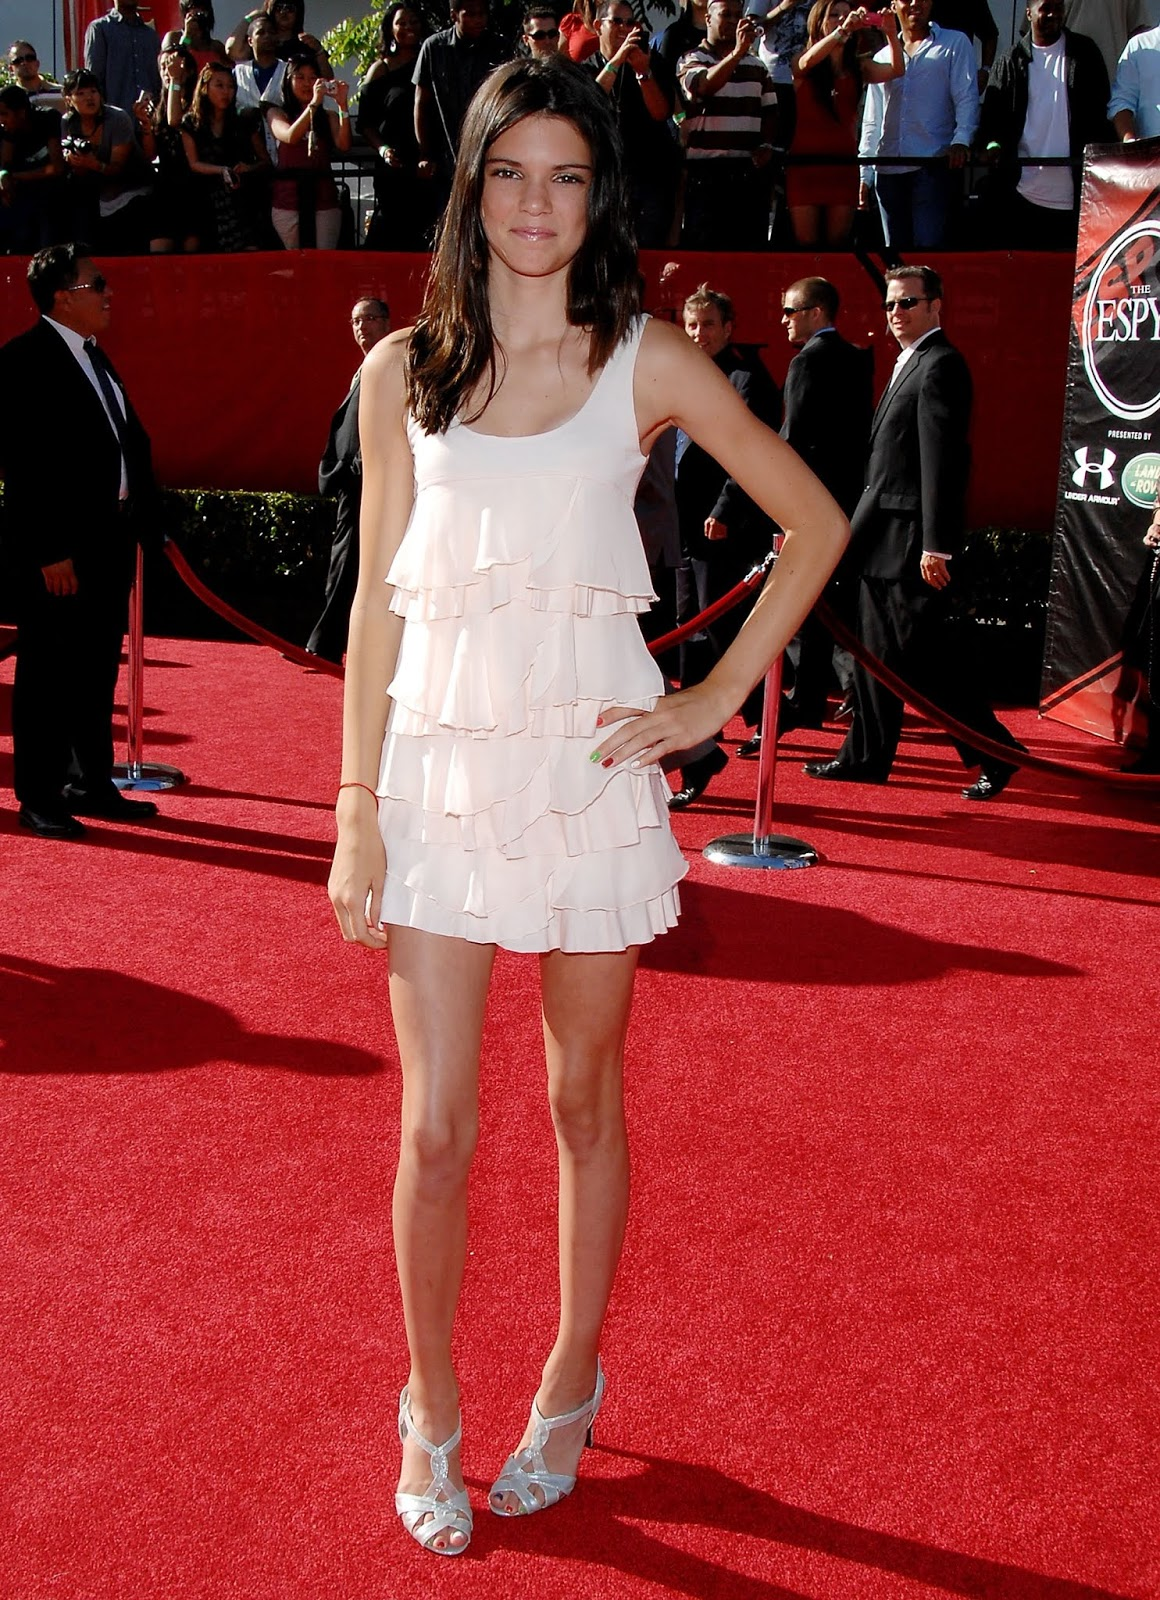 15-07-2009 17th Annual ESPY Awards-11